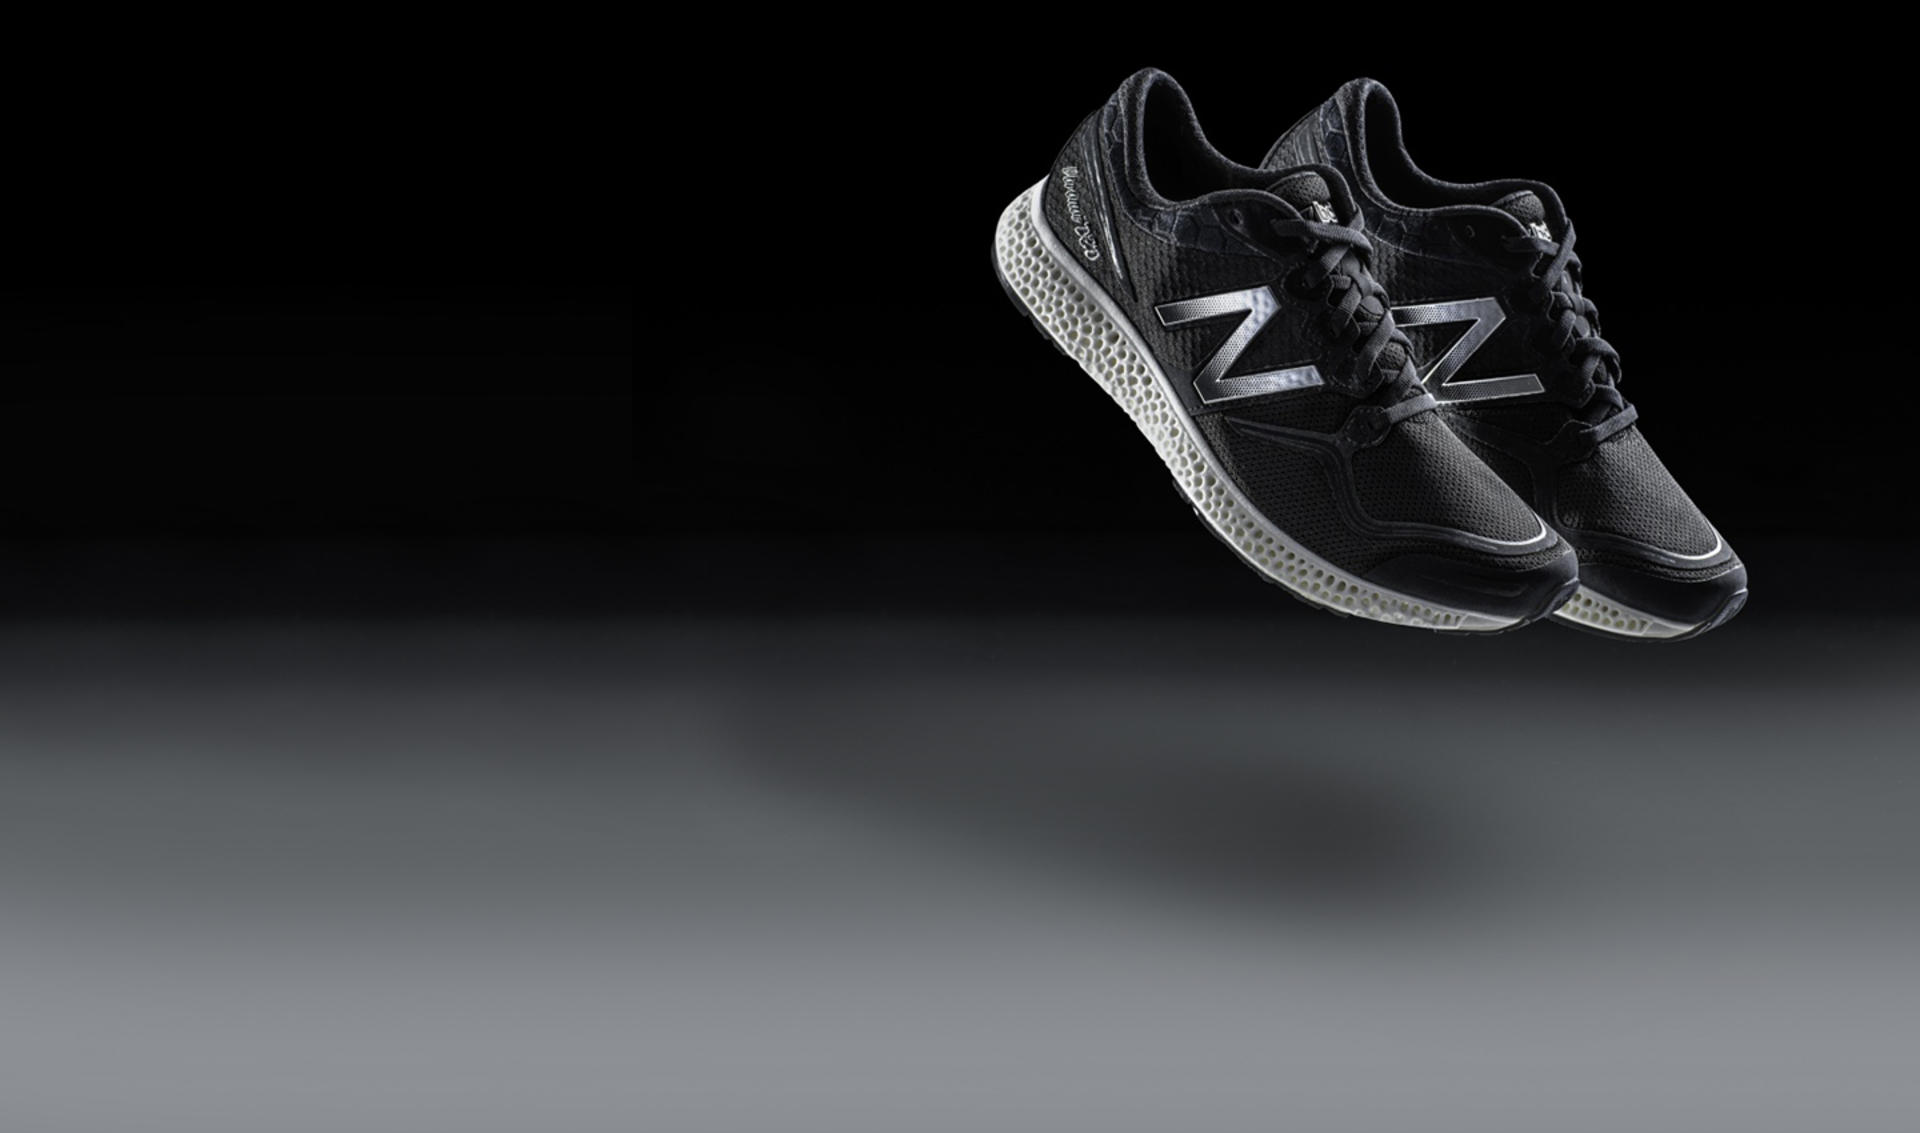 3D Printed Shoes with New Balance